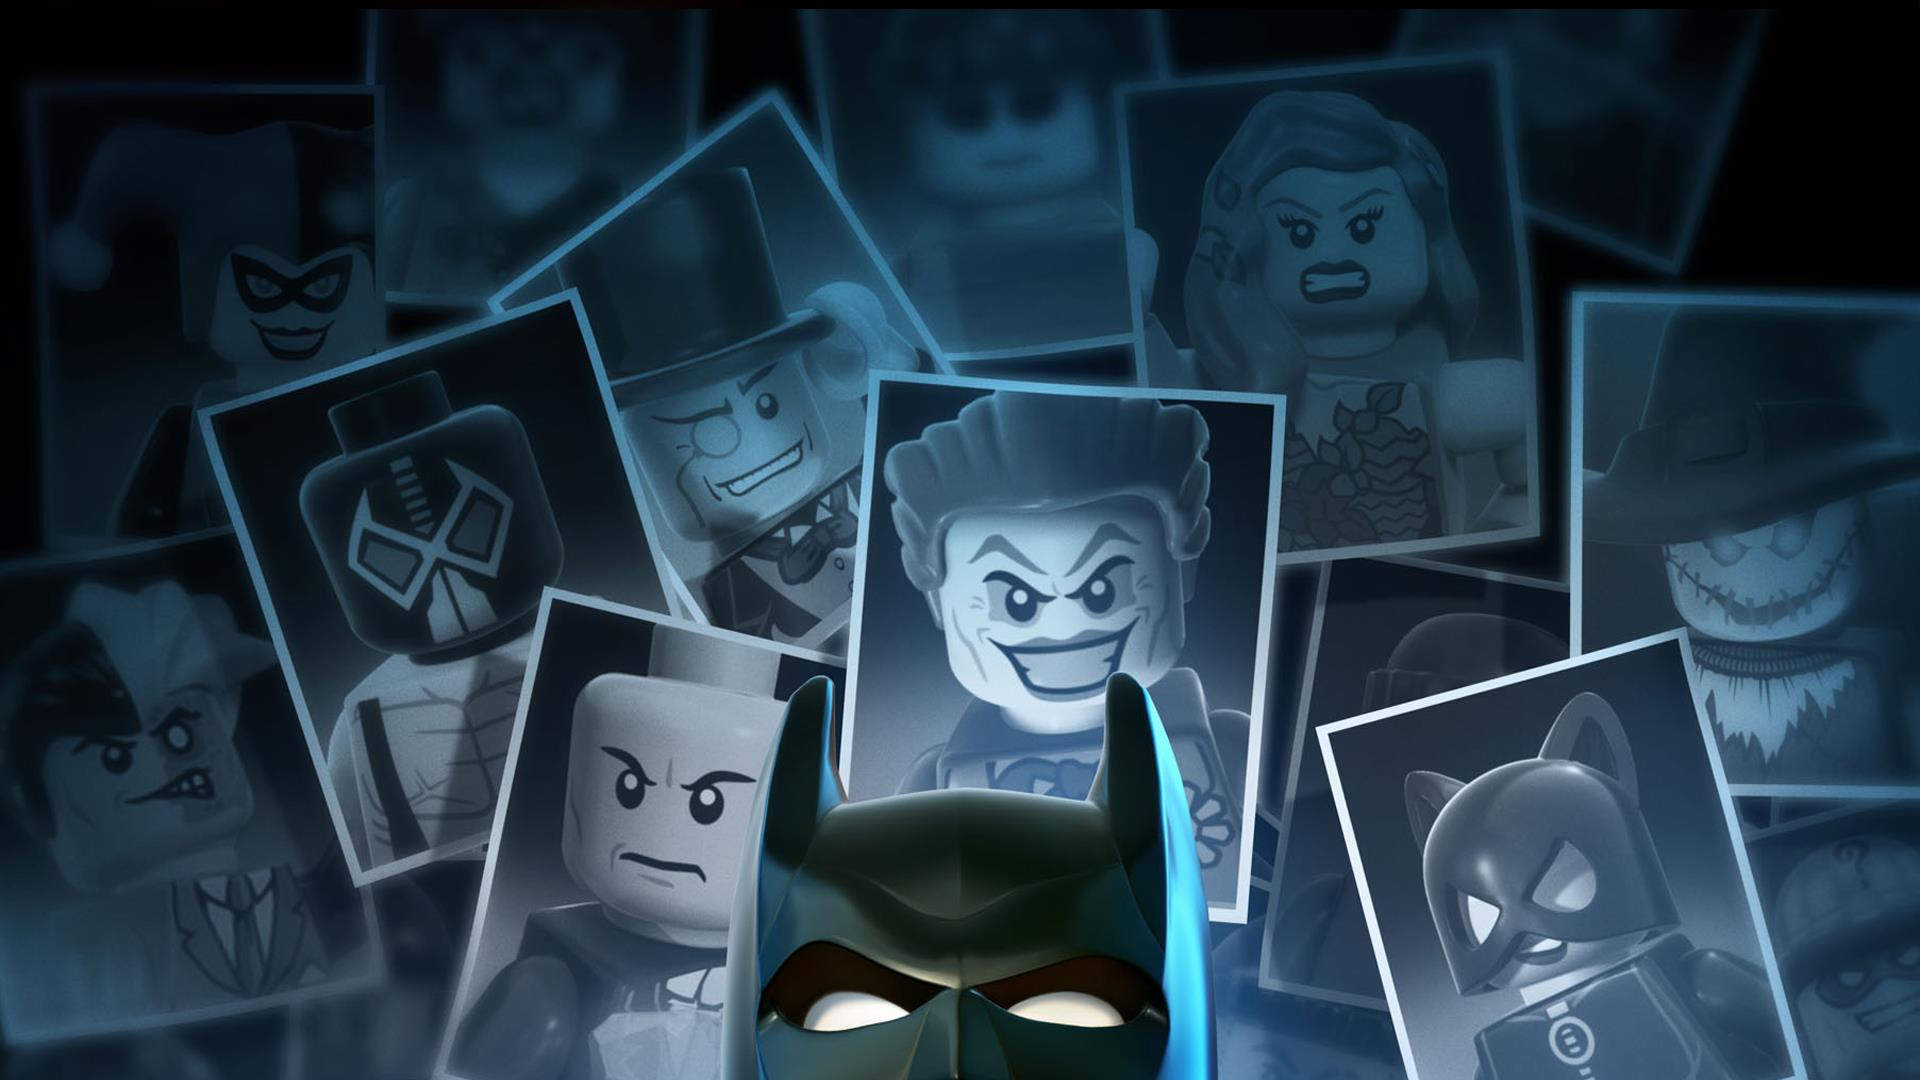 lego batman computer wallpapers desktop backgrounds 1920x1080 id